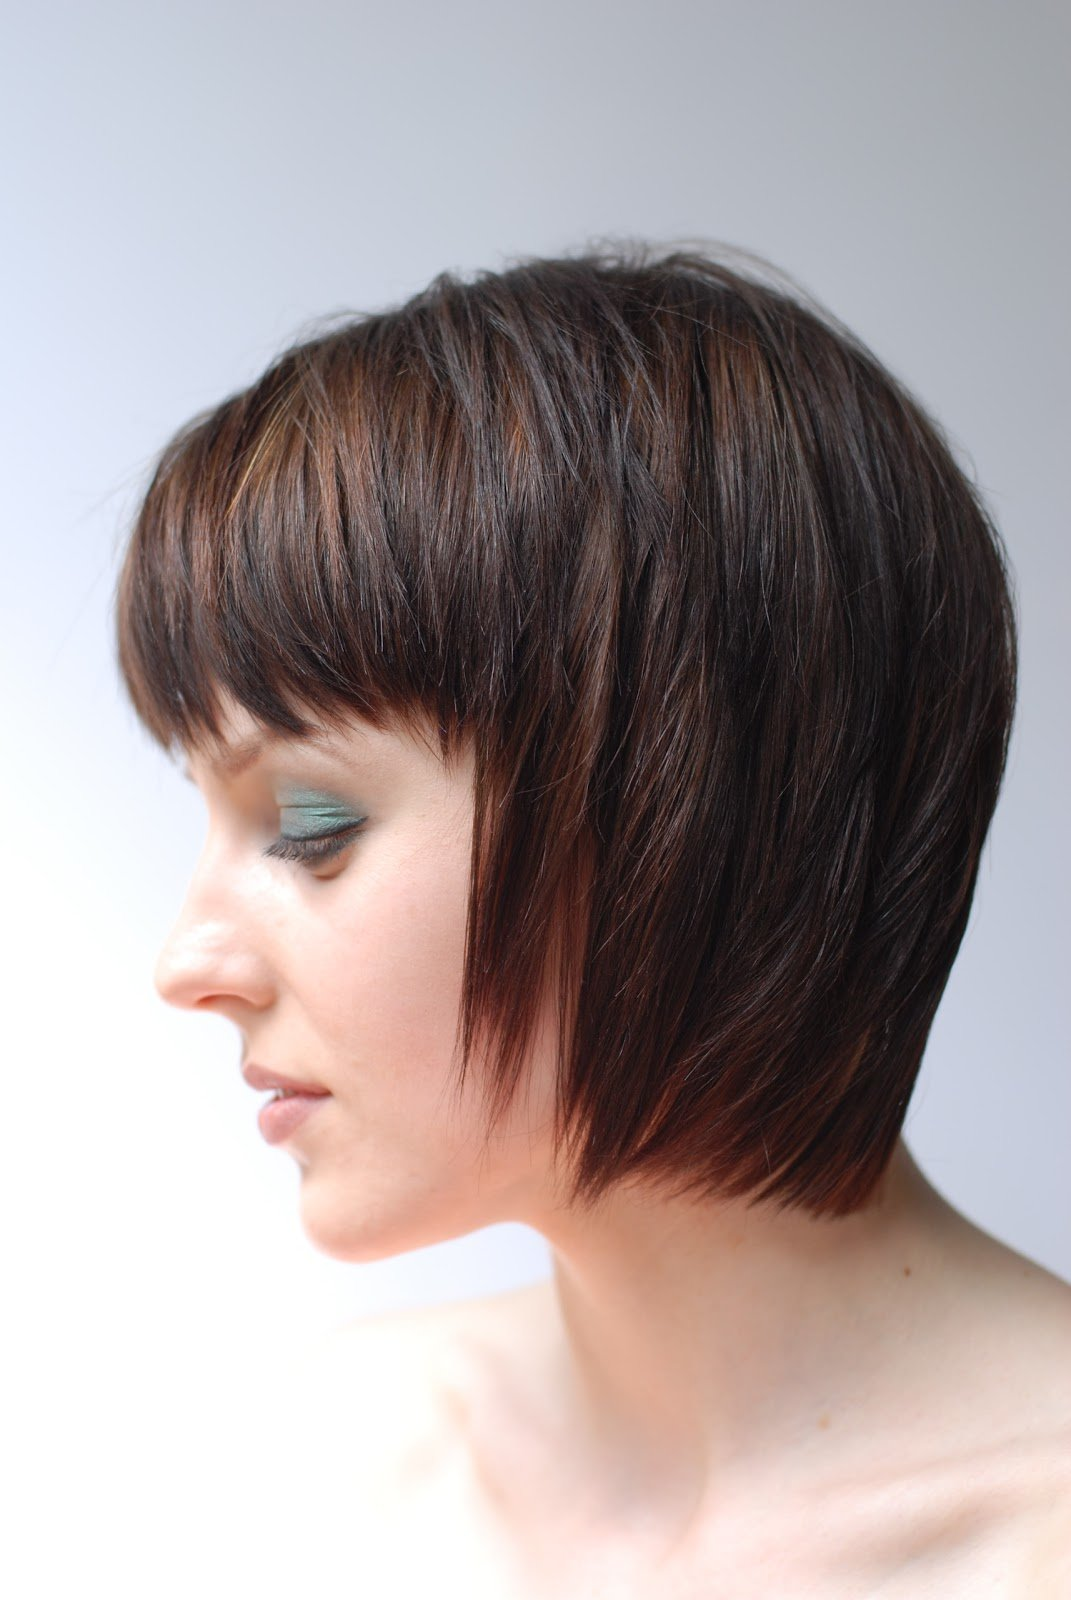 New Kafgallery Celebrity Short Modern Bob Hairstyles For 2012 Ideas With Pictures